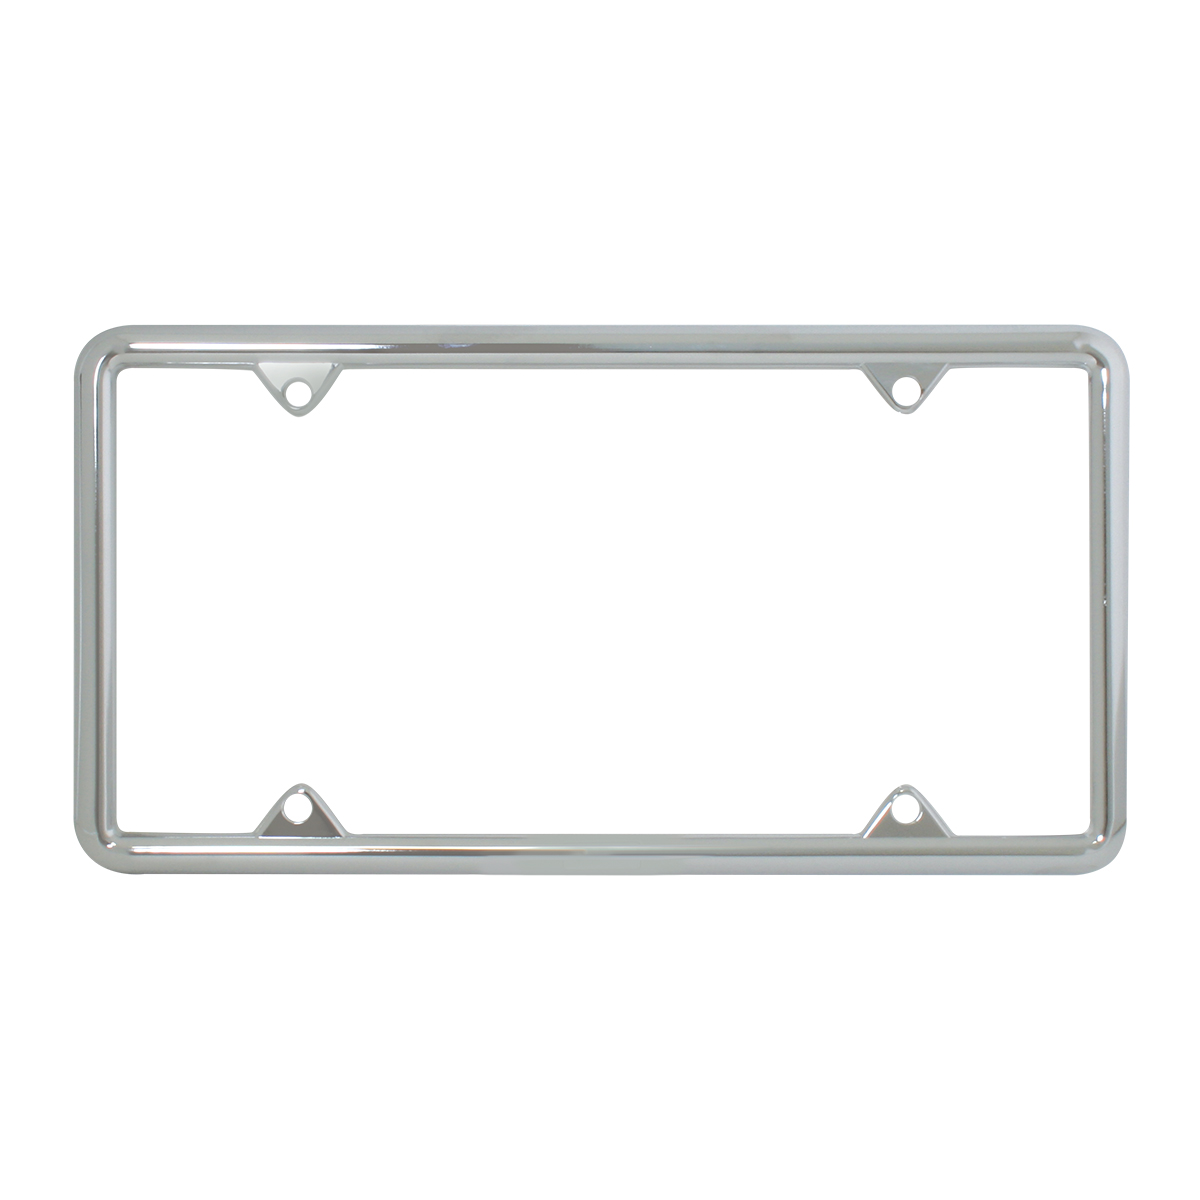 60061 Economic Chrome Zinc Classic 4-Hole License Plate Frames